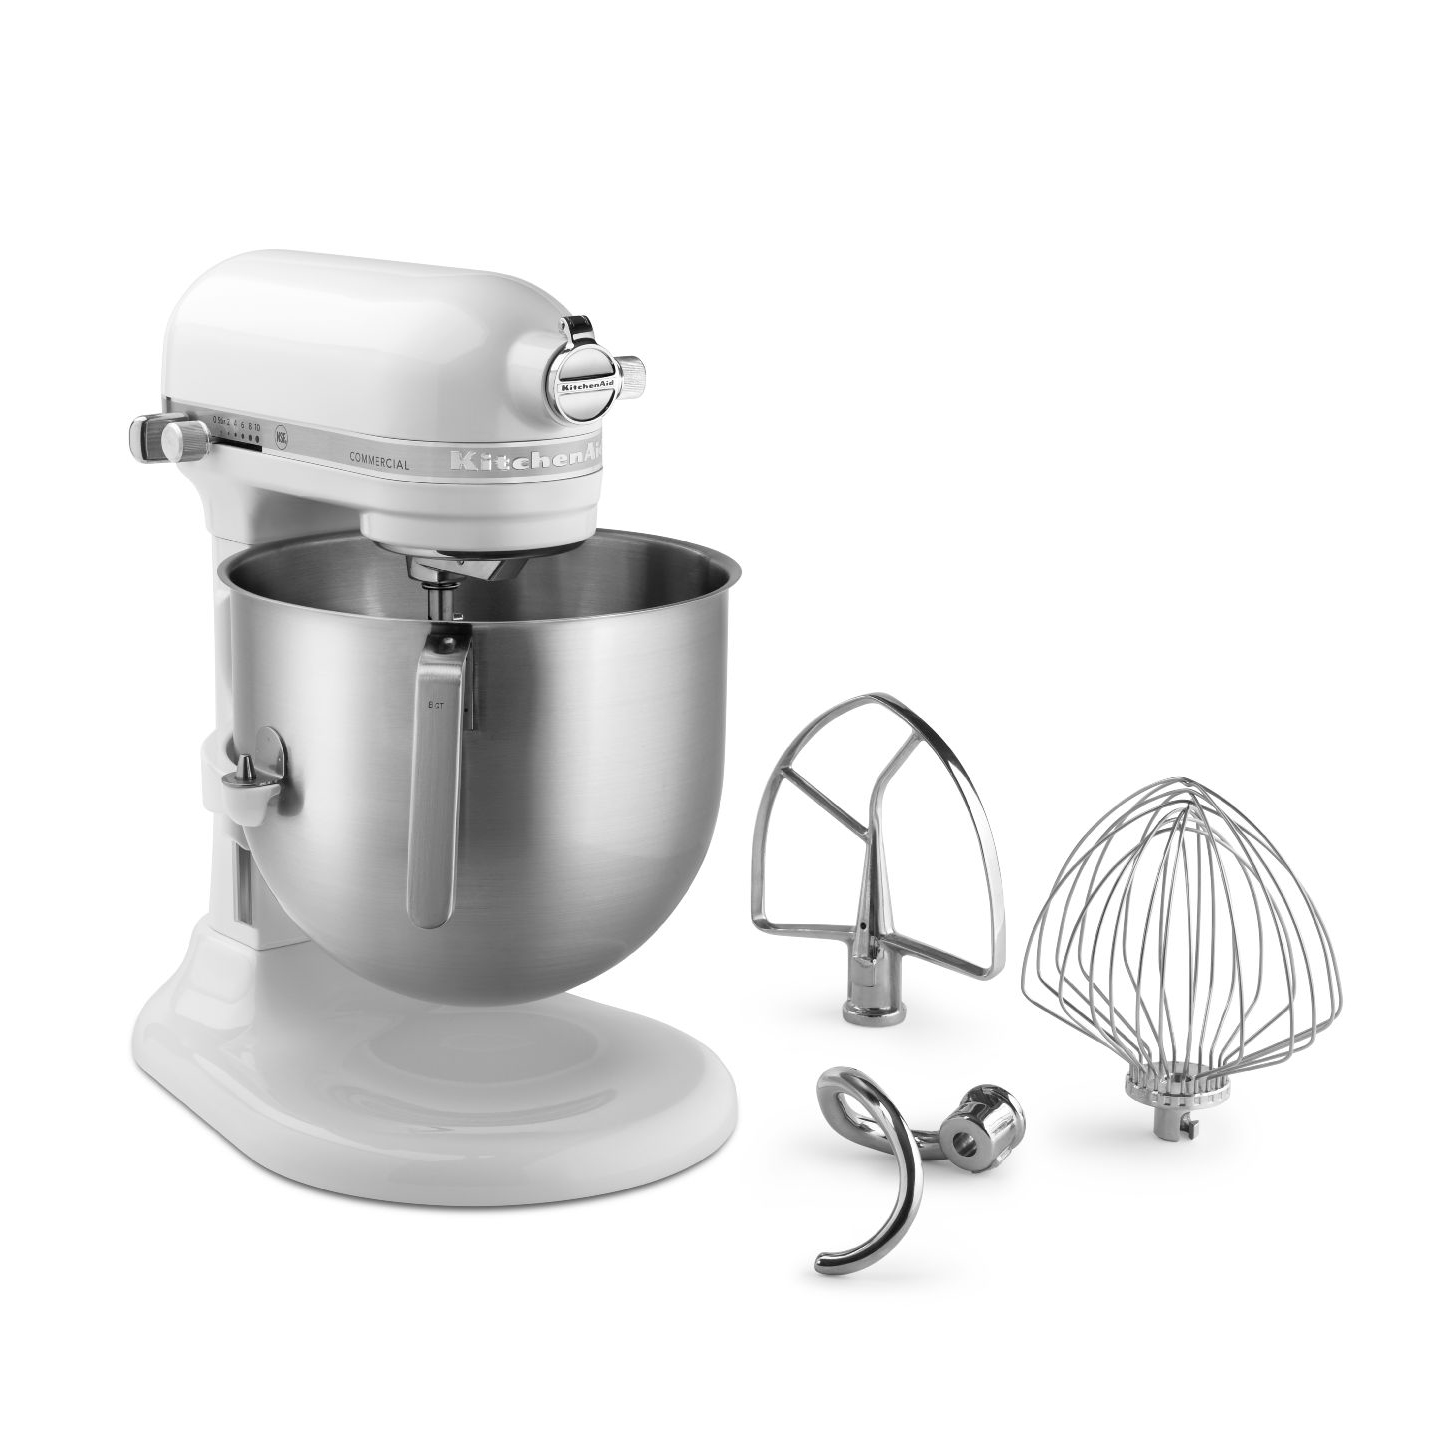 KitchenAid® KSM8990WH Commercial Stand Mixer, countertop, 8 quart bowl with lift, PowerCore® technology, white finish, 500 watts, 1-1/3 HP, 120v/60/1-ph, 4' cord, cULus, NSF